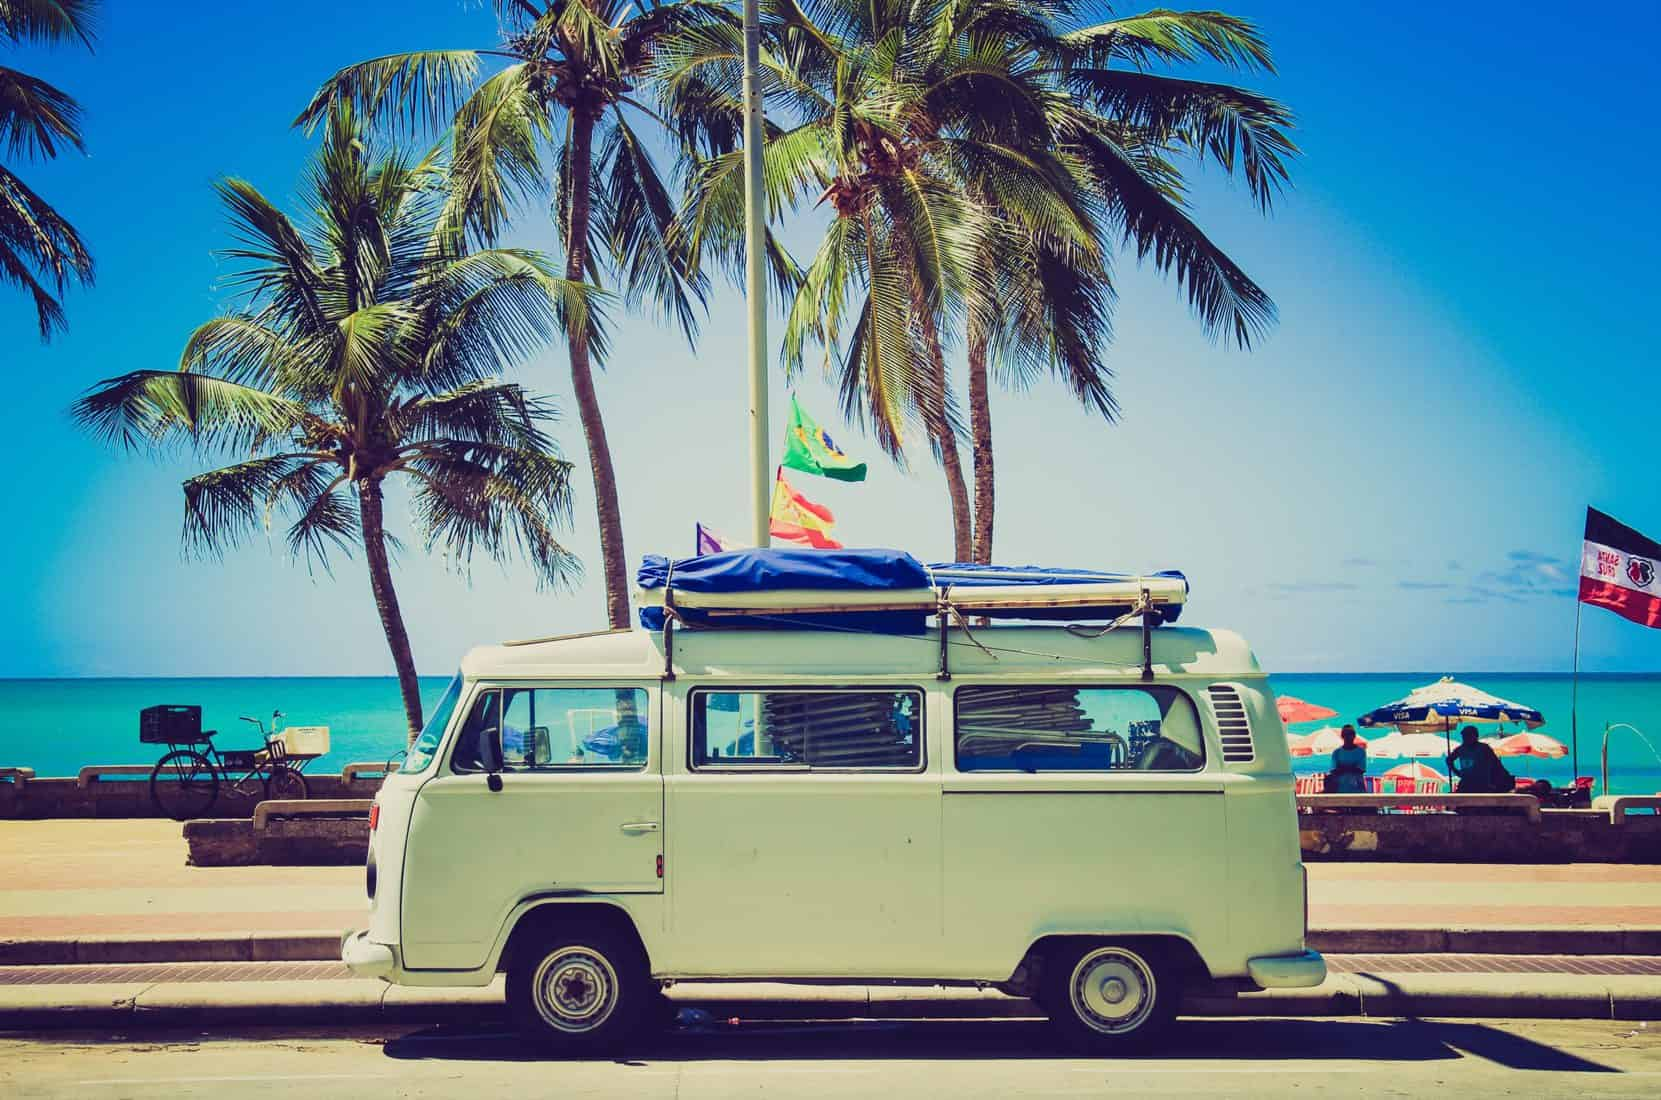 What Should I Do This Summer as a Pre-Med? - Prospective Doctor